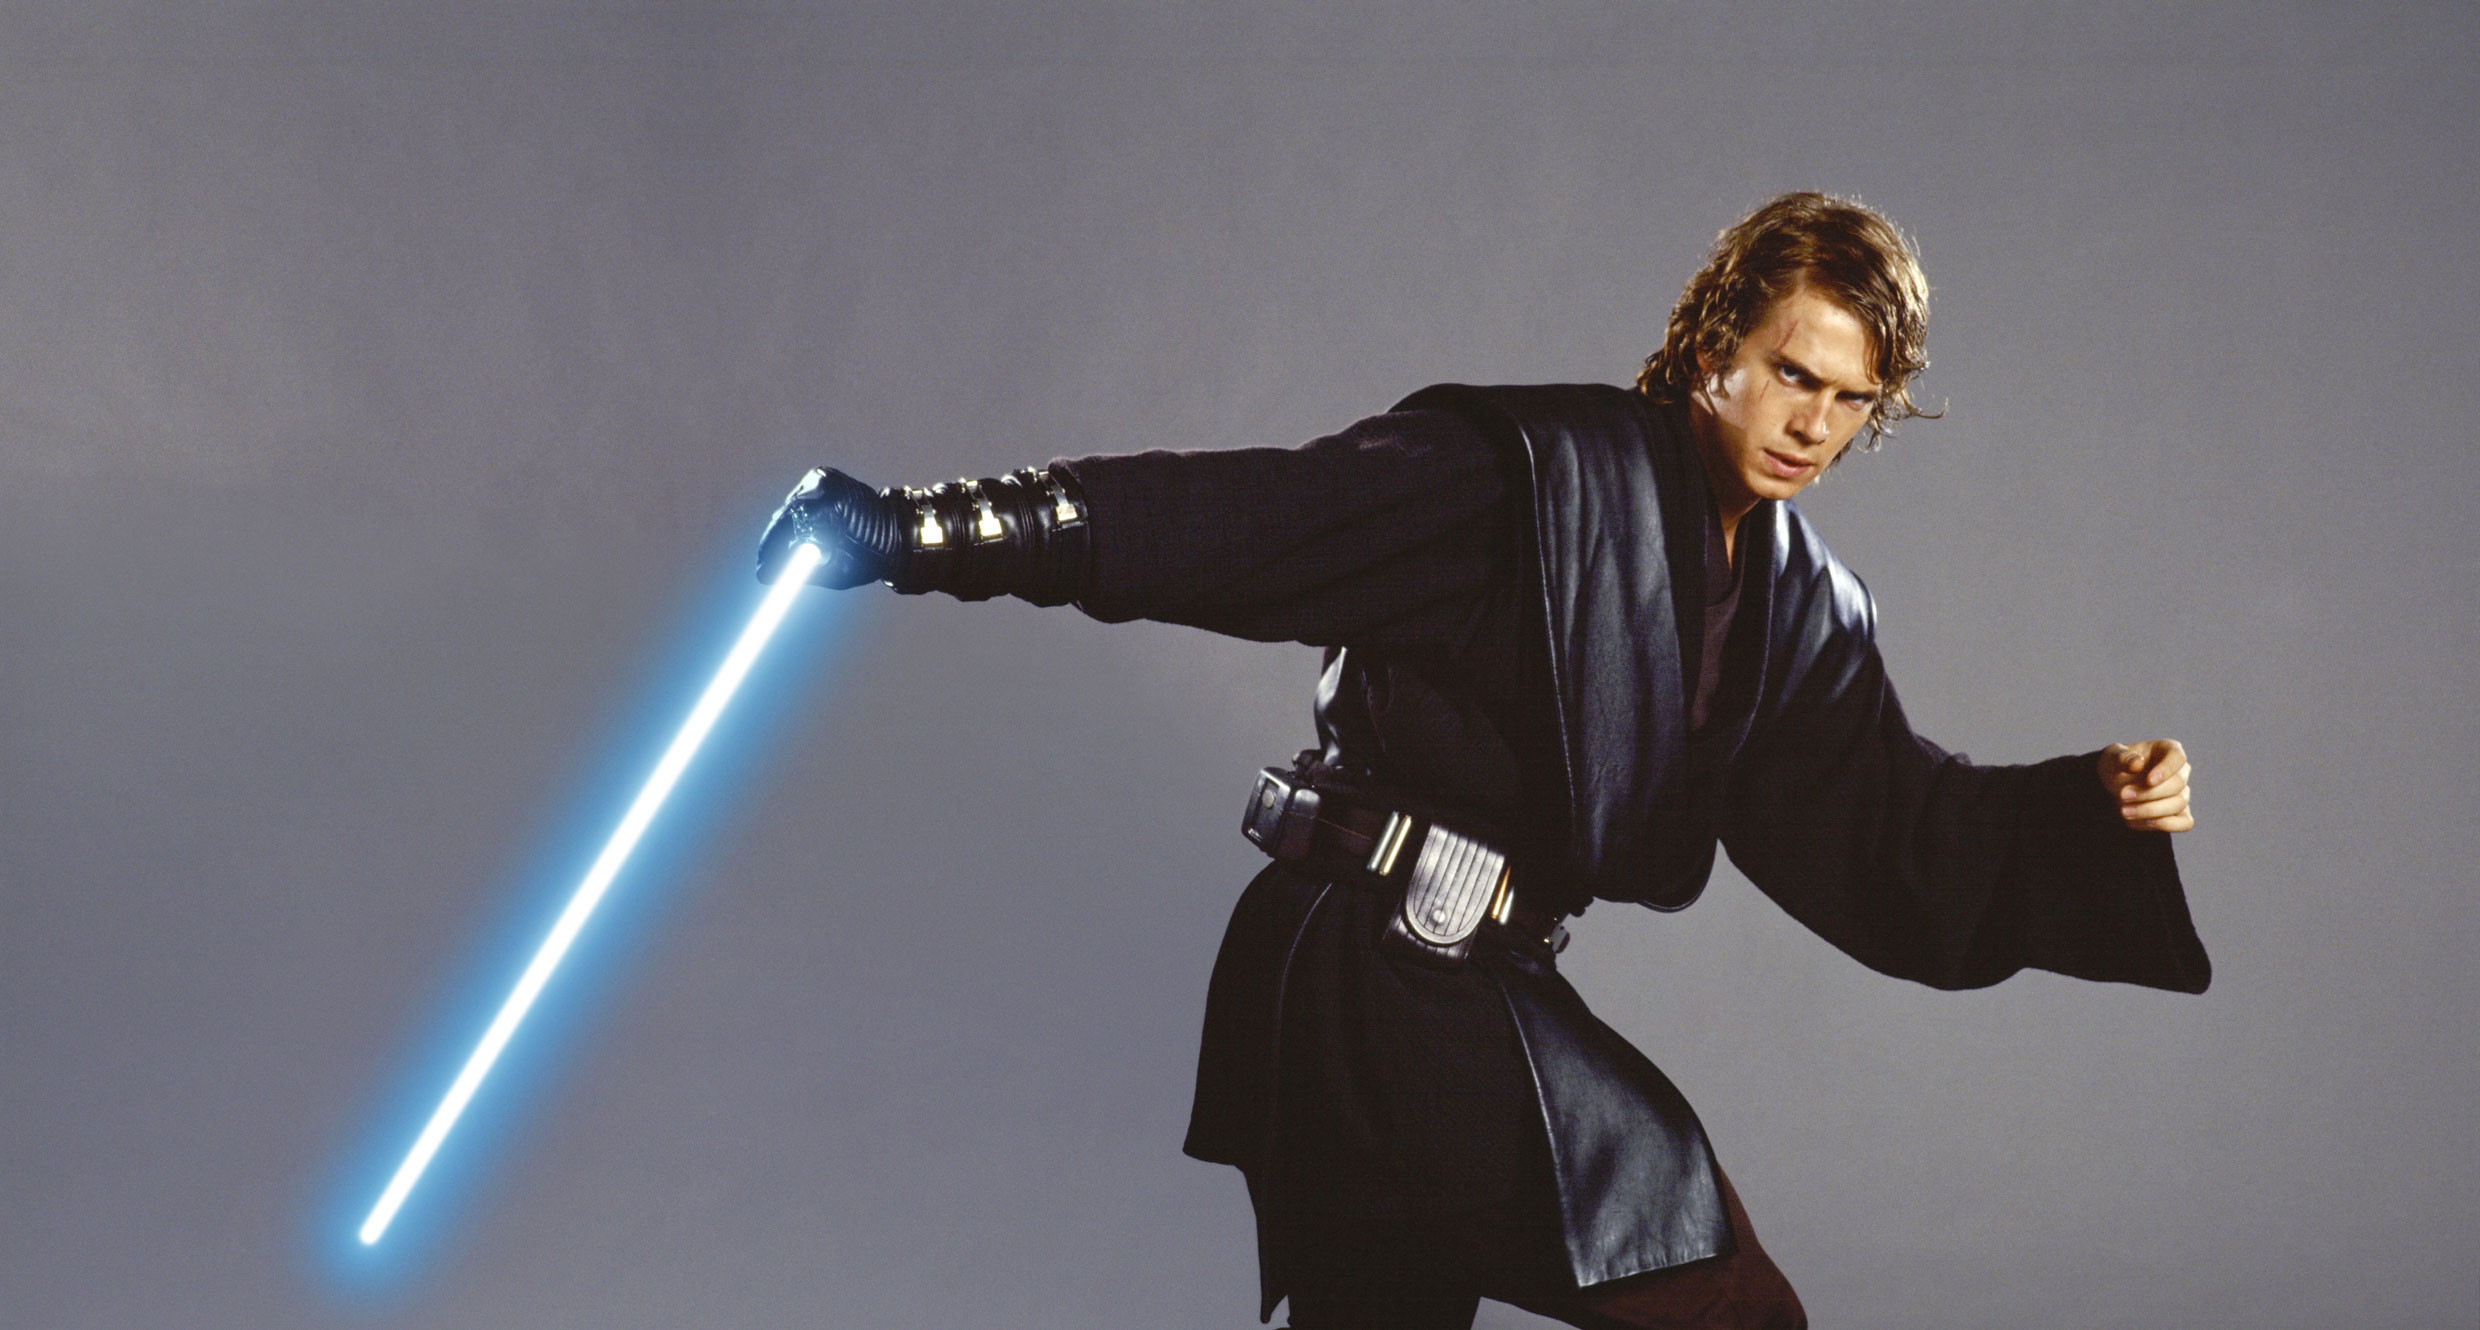 Even Hayden Christensen Hated Anakin Skywalker